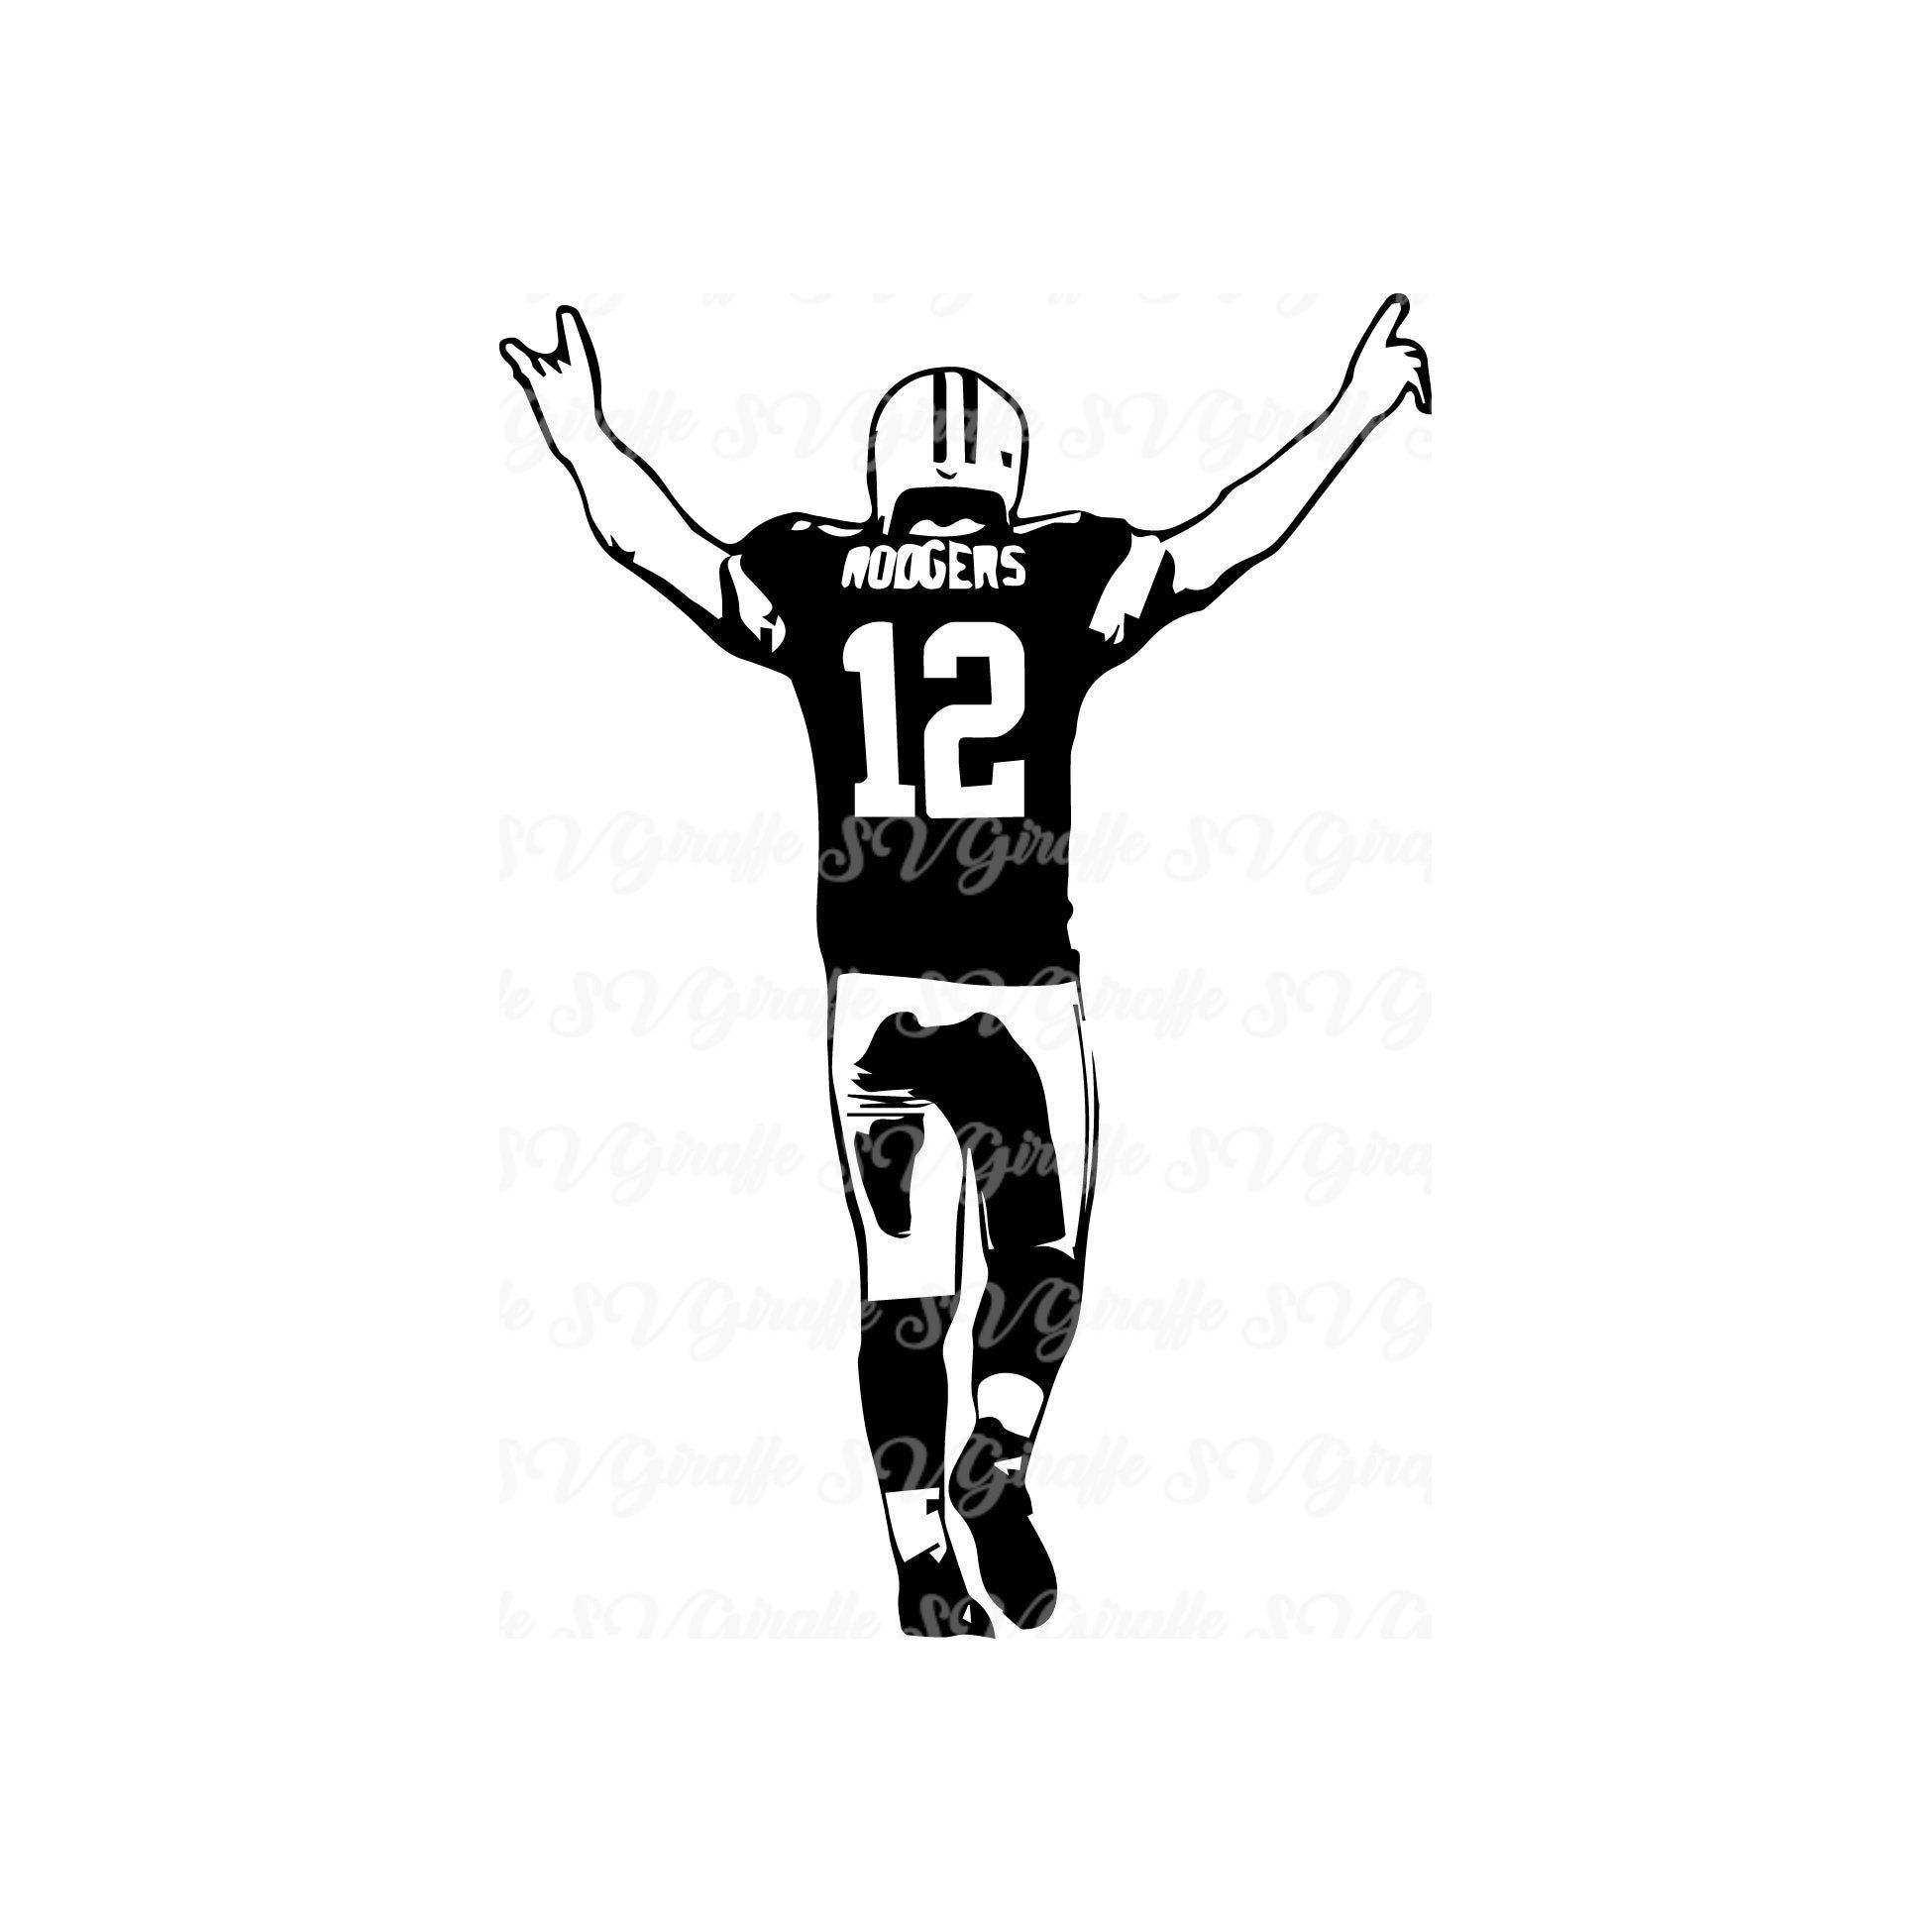 Aaron Rodgers Svg Dxf Png Pdf Jpg Files Aaron Rodgers Vector File Green Bay Packers Svg Dxf Pdf Png Jpg Cricut Pack Aaron Rodgers Svg Green Bay Packers